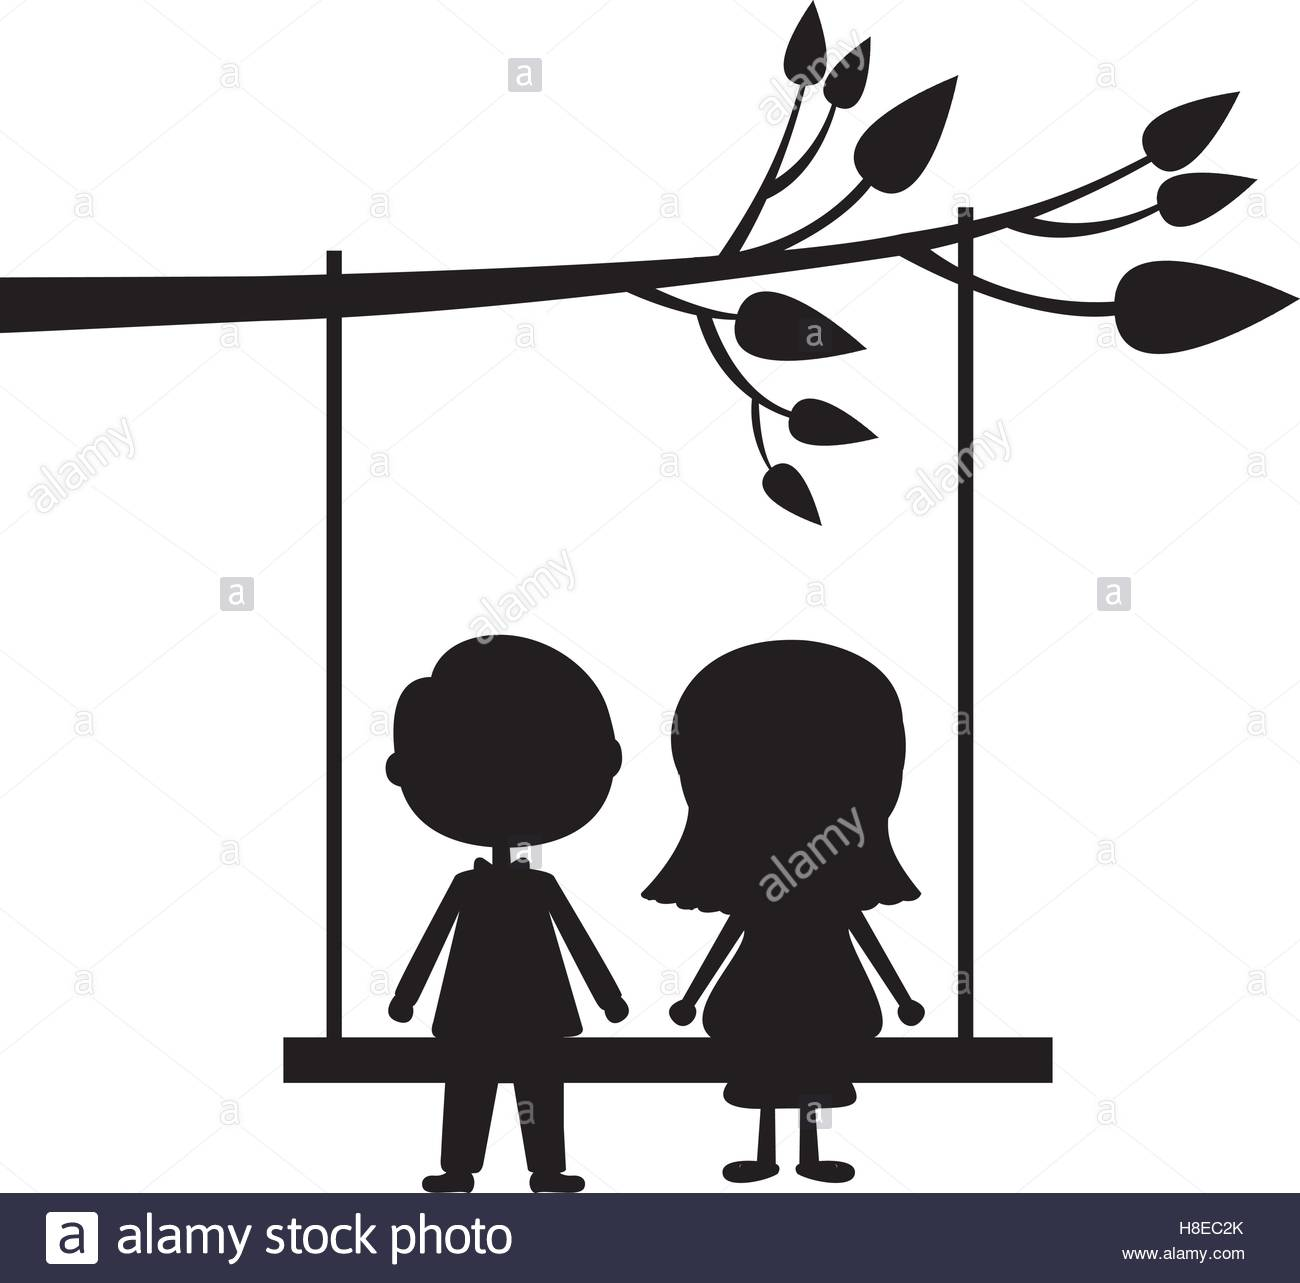 1300x1283 Couple Male And Female Silhouette On Tree Swing Icon Image Vector